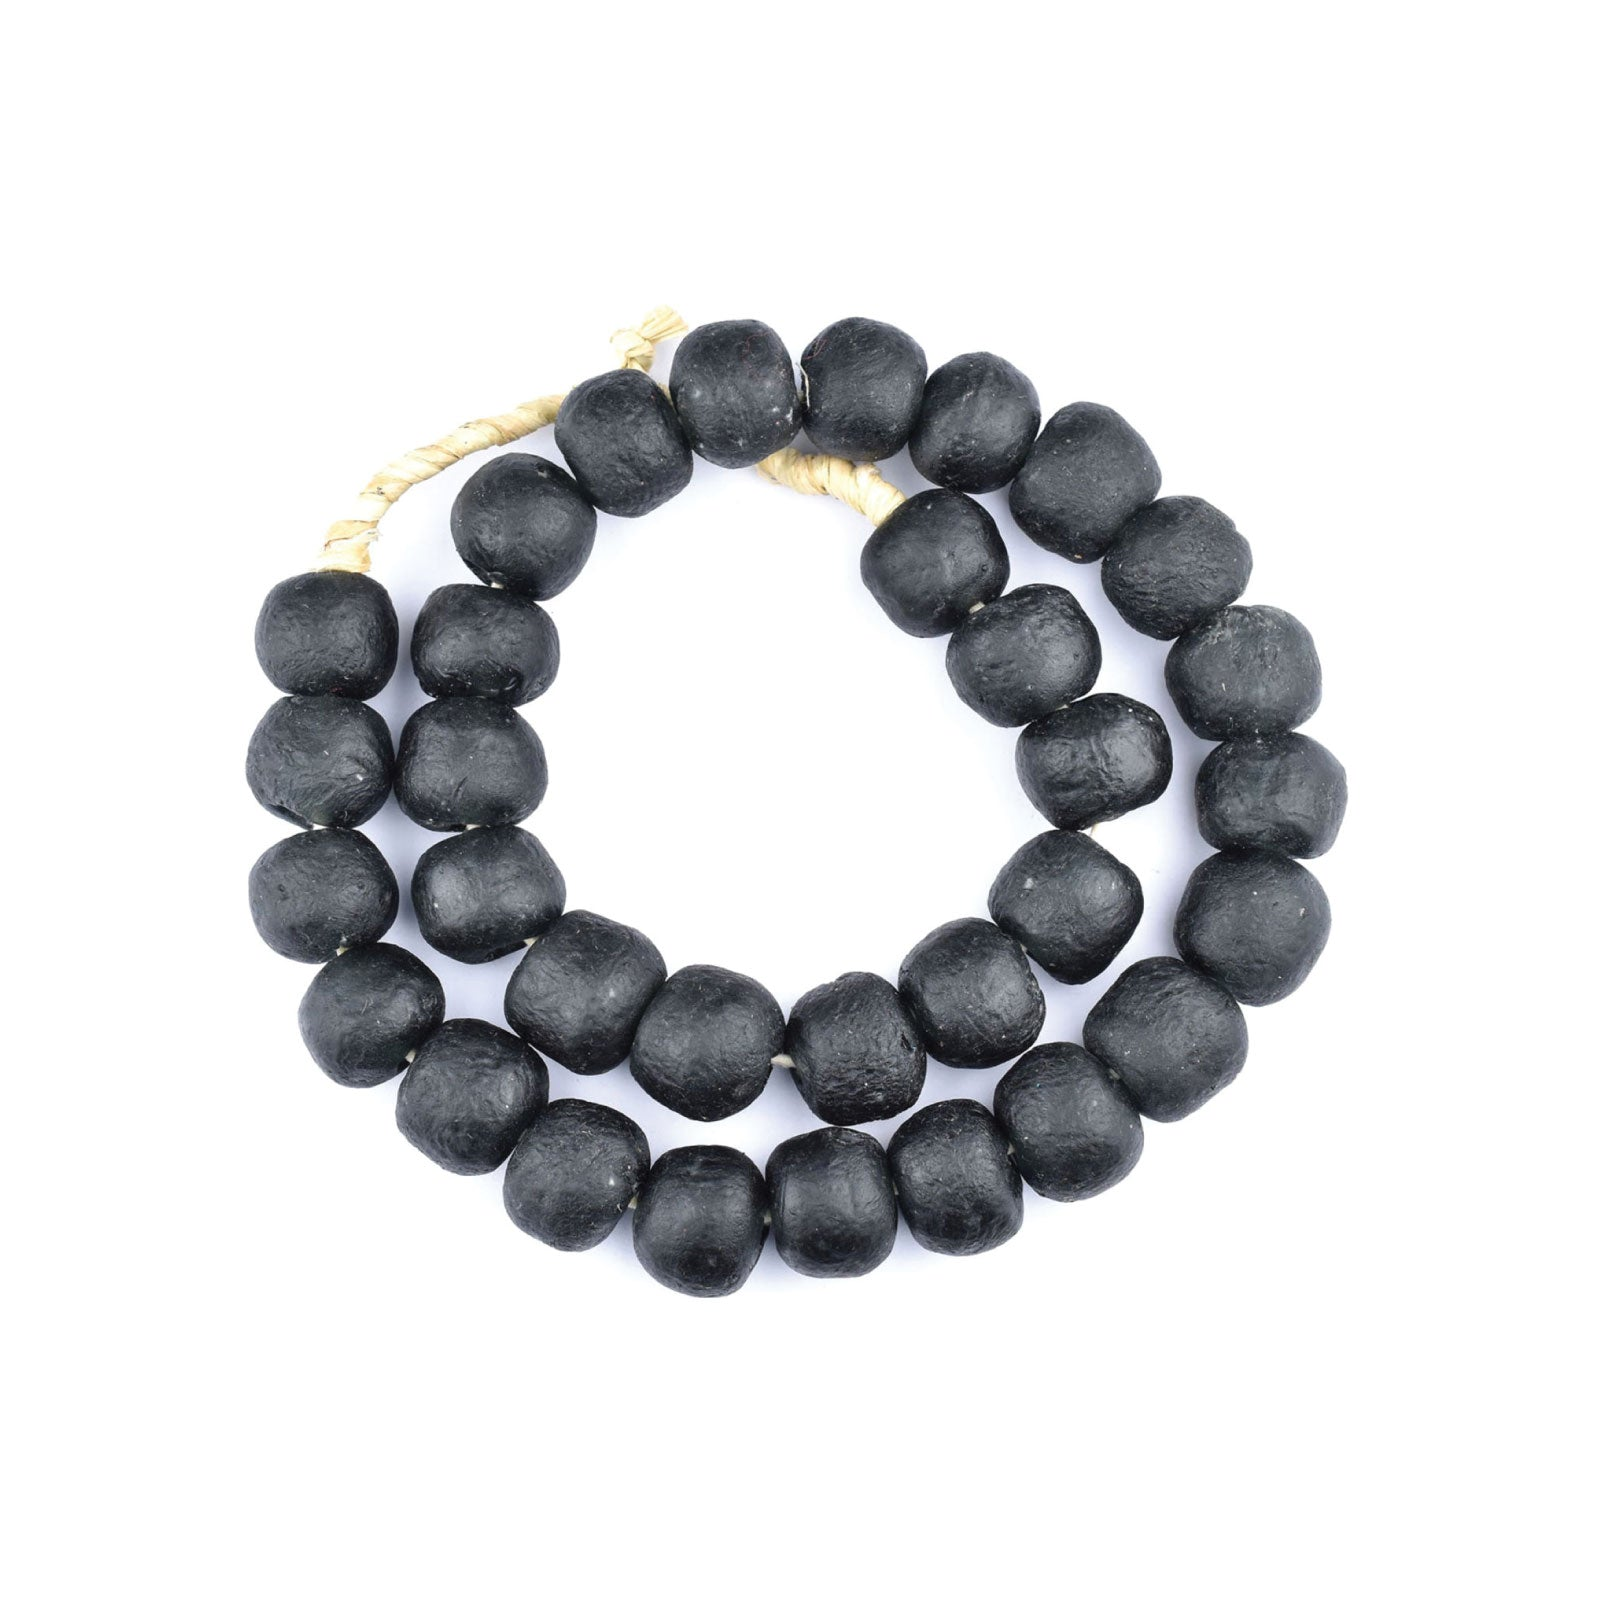 African Glass Beads in Black